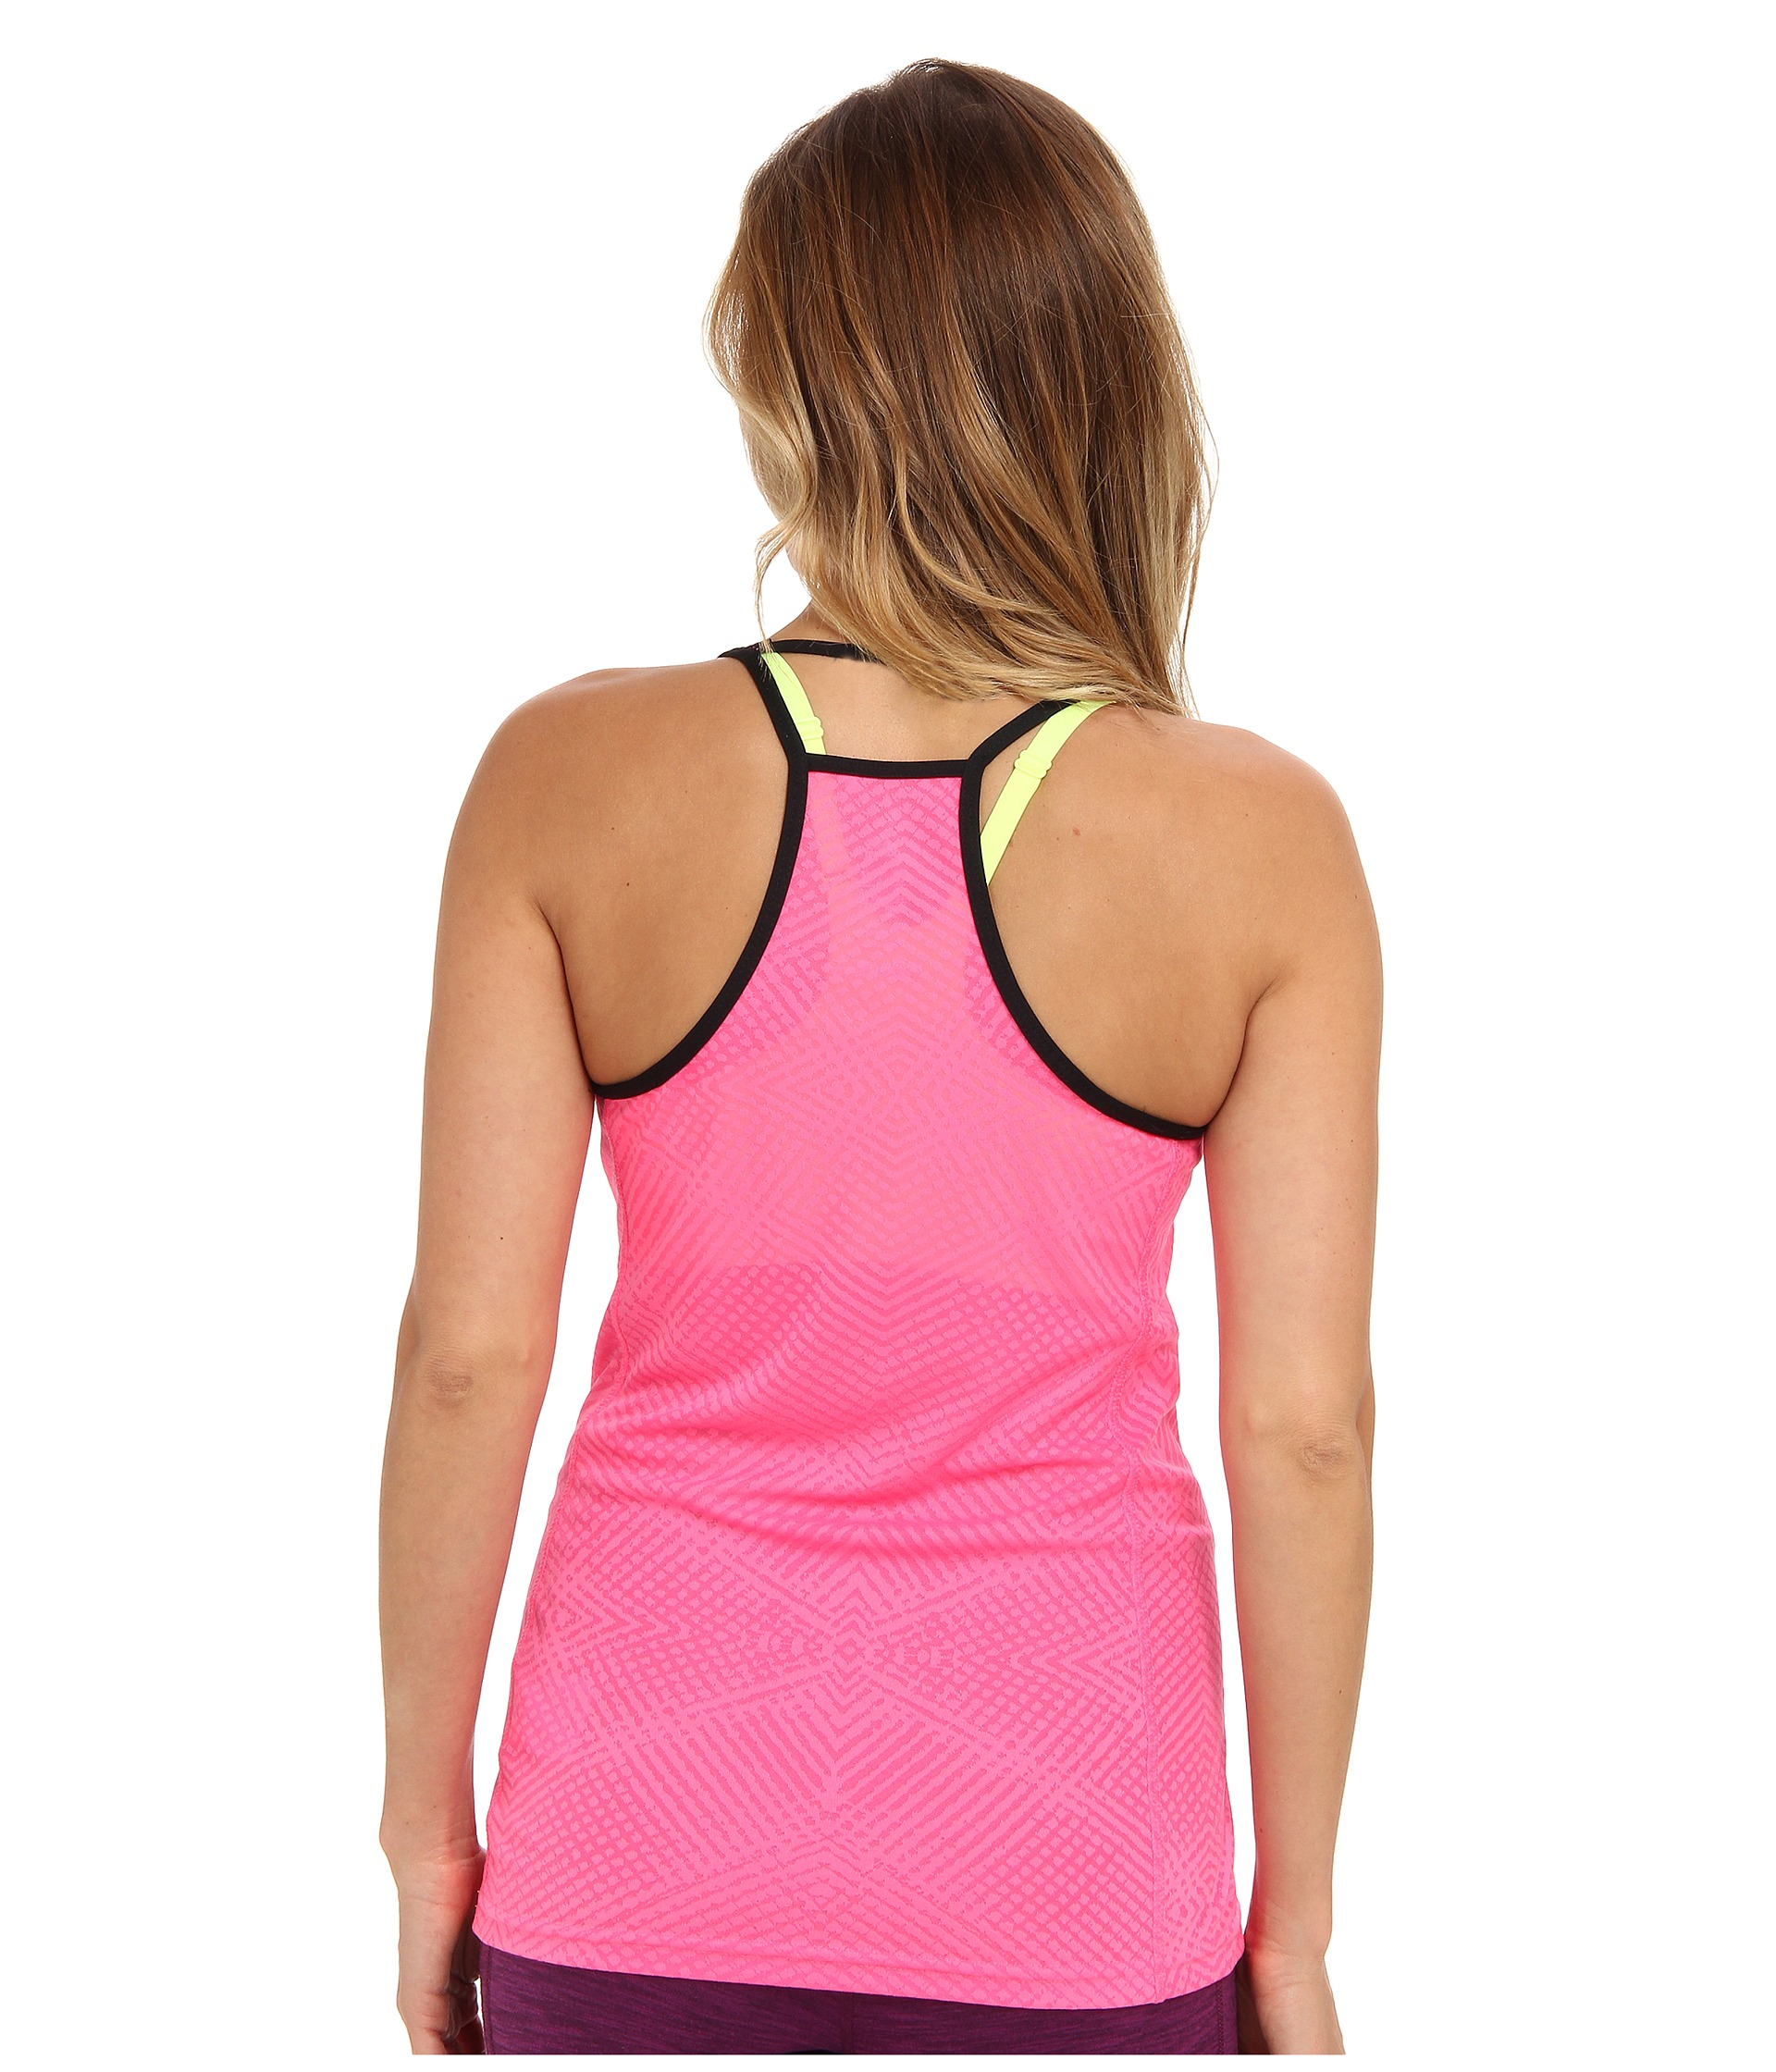 lyst adidas supernova mesh tank top in pink. Black Bedroom Furniture Sets. Home Design Ideas